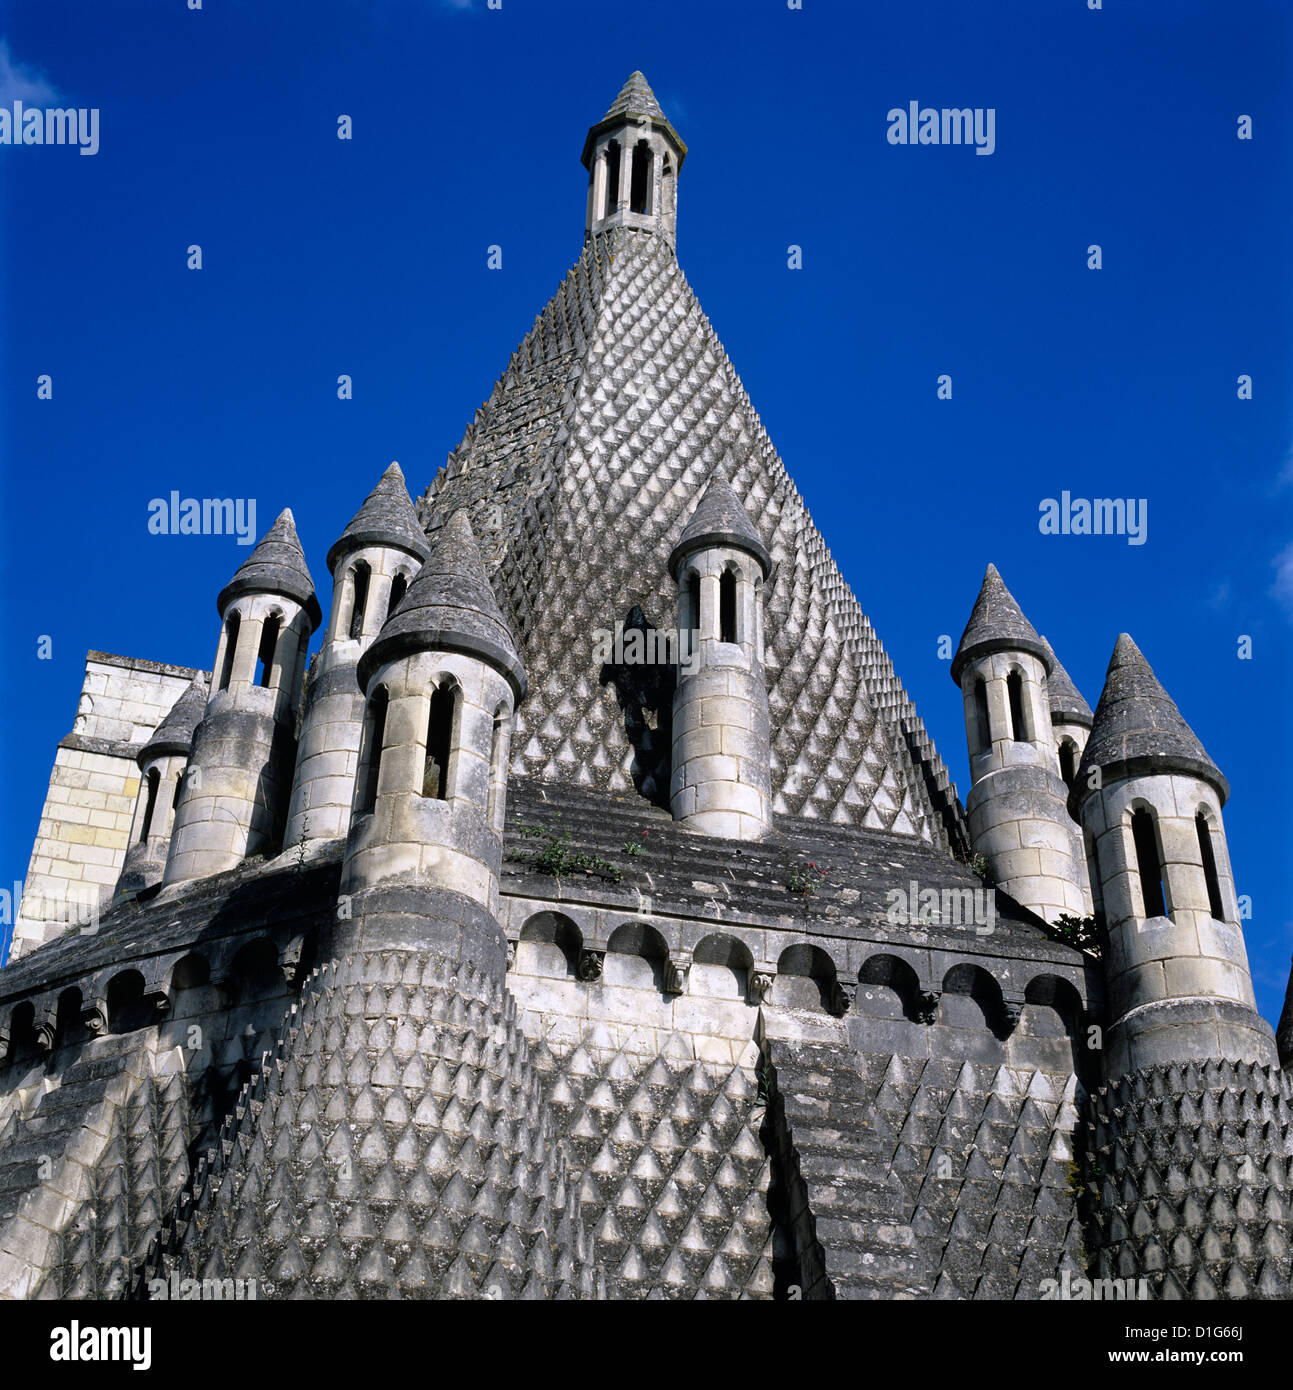 Kitchen chimneys, Fontevraud Abbey (Fontevraud-l'Abbaye), Loire Valley, Anjou, France, Europe - Stock Image